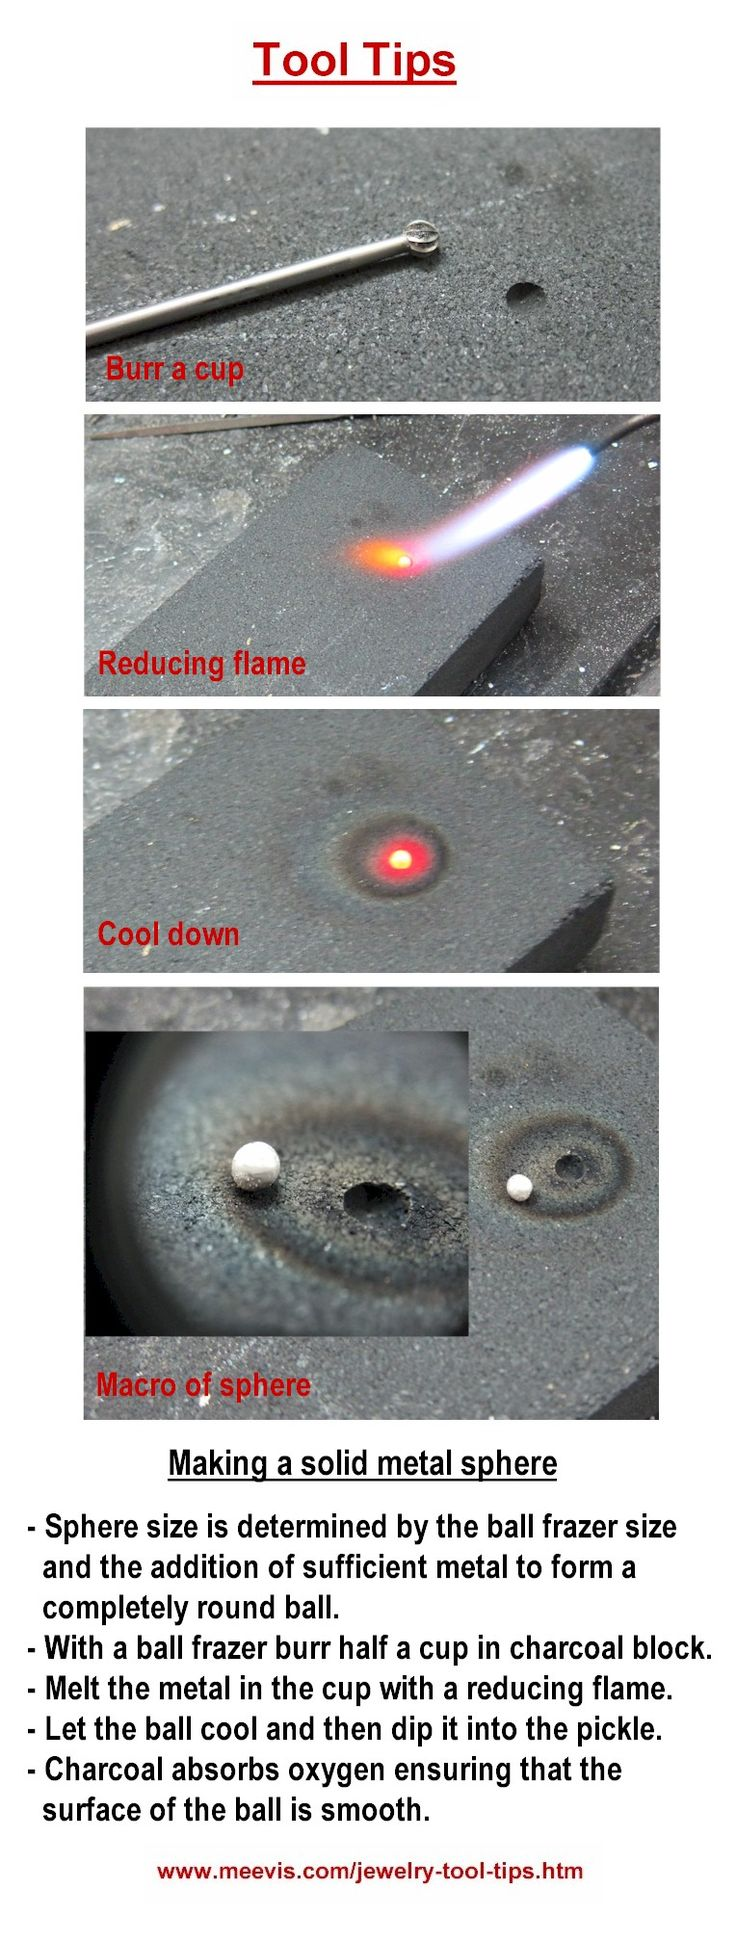 Jewelry Tool Tips - Making a solid metal sphere (ball) in a charcoal block - Granulazione dell'argento